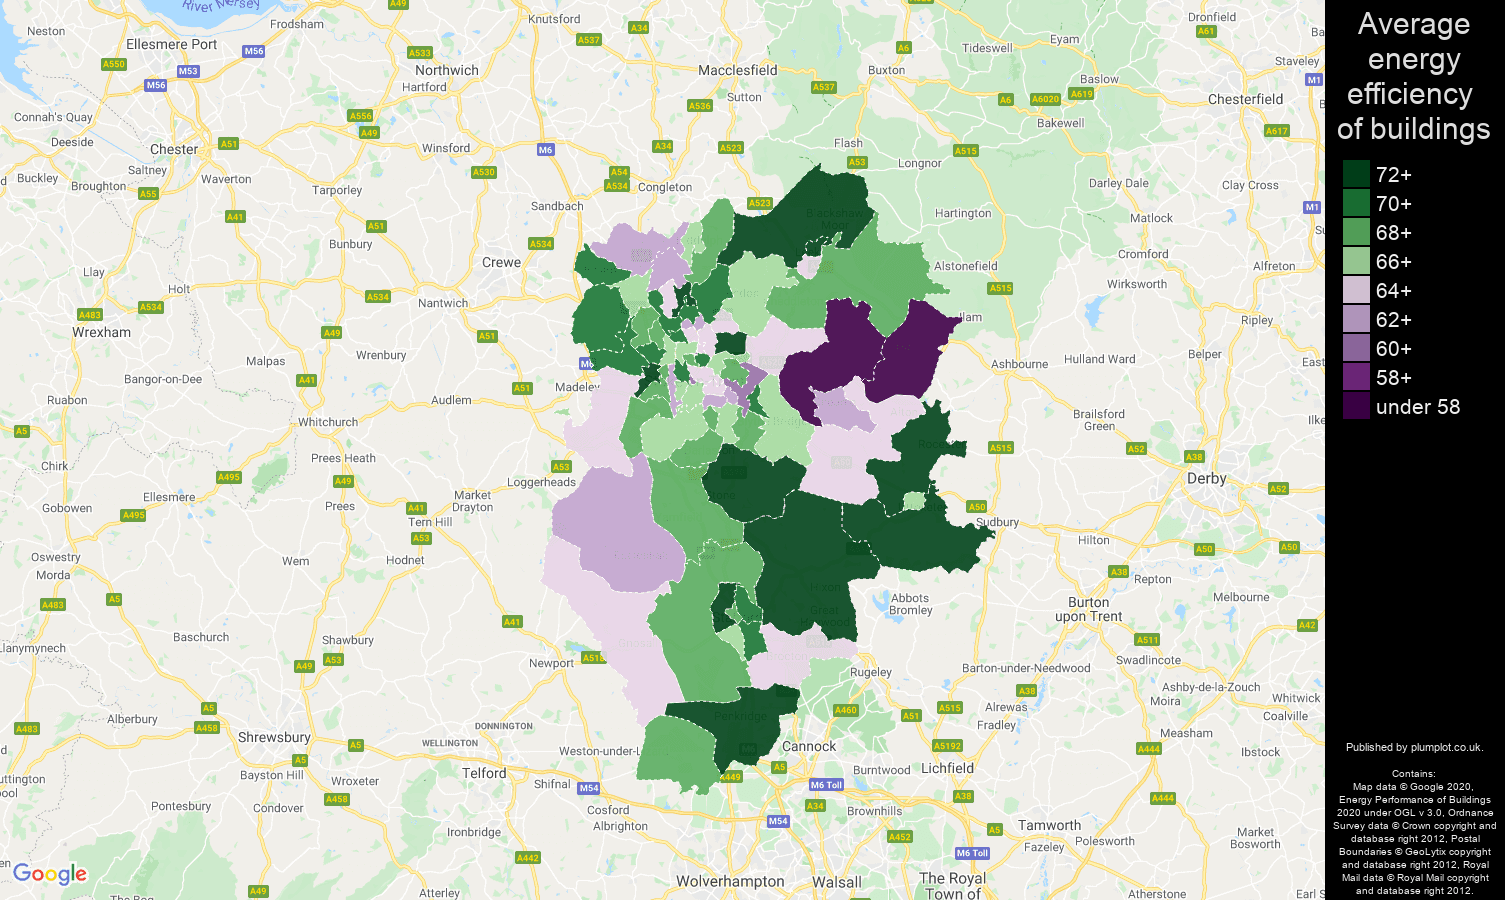 Stoke on Trent map of energy efficiency of flats